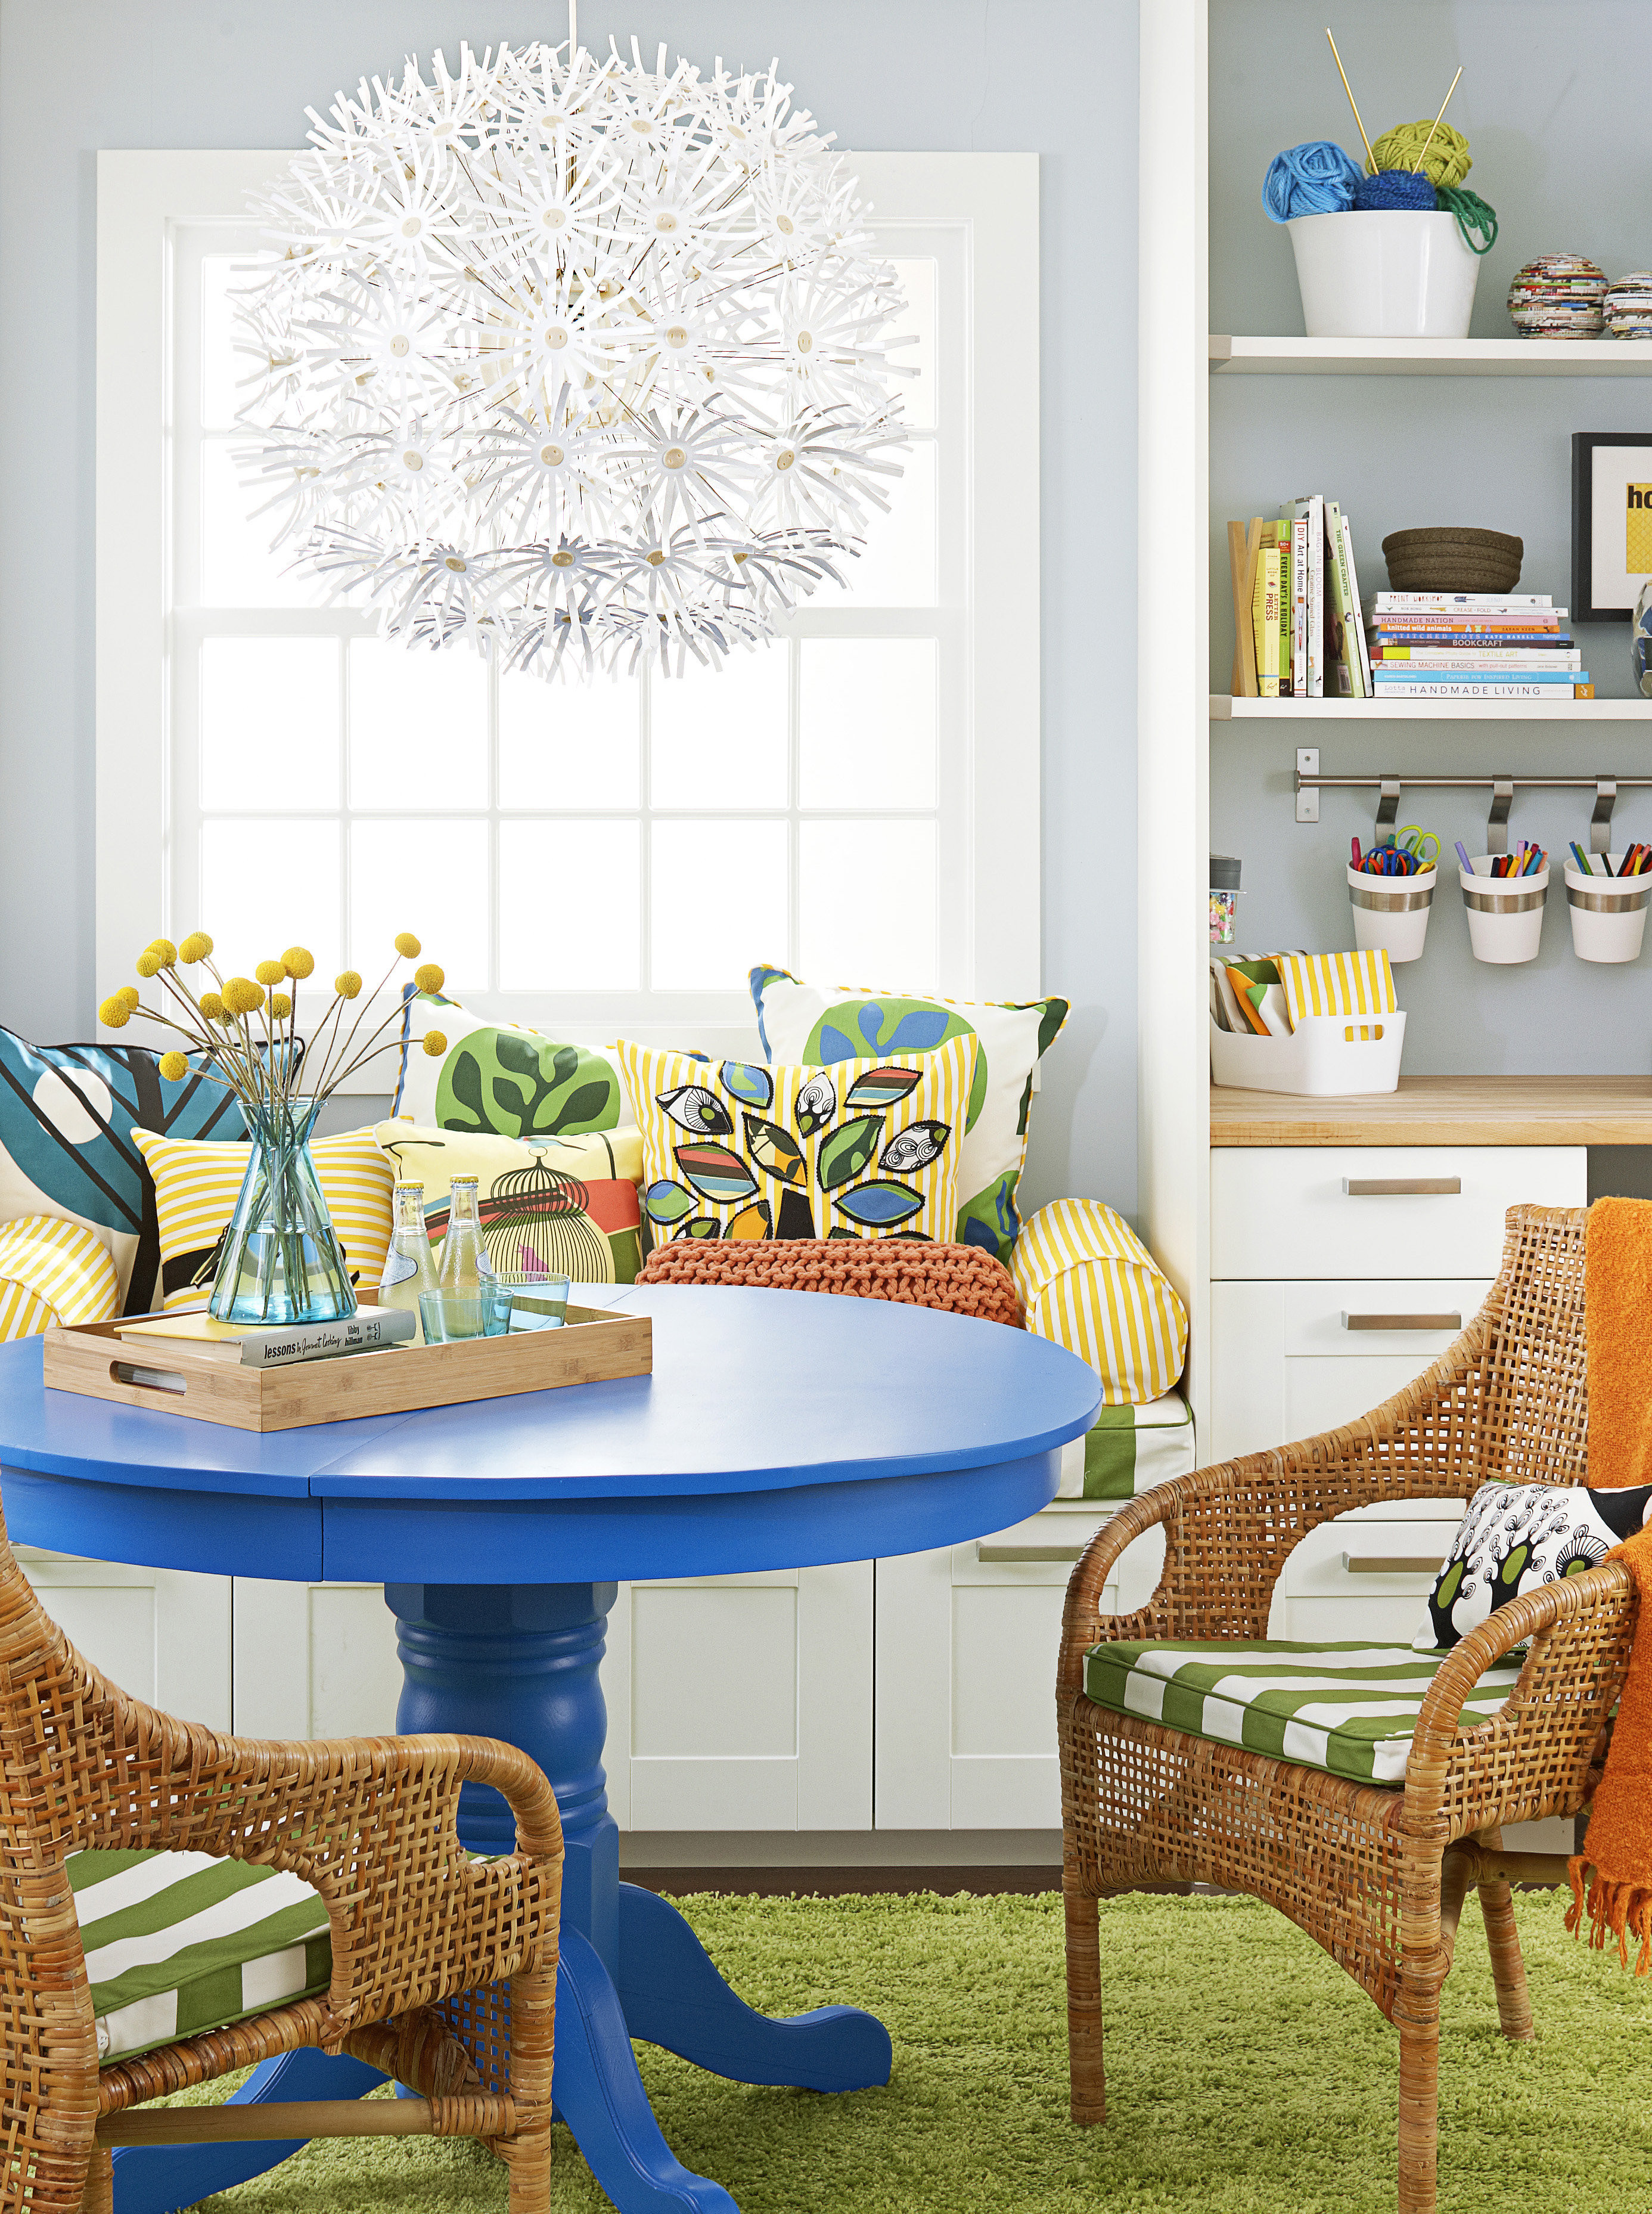 Diy Home Ideas  Better Homes and Gardens Do It Yourself DIY Ideas Better